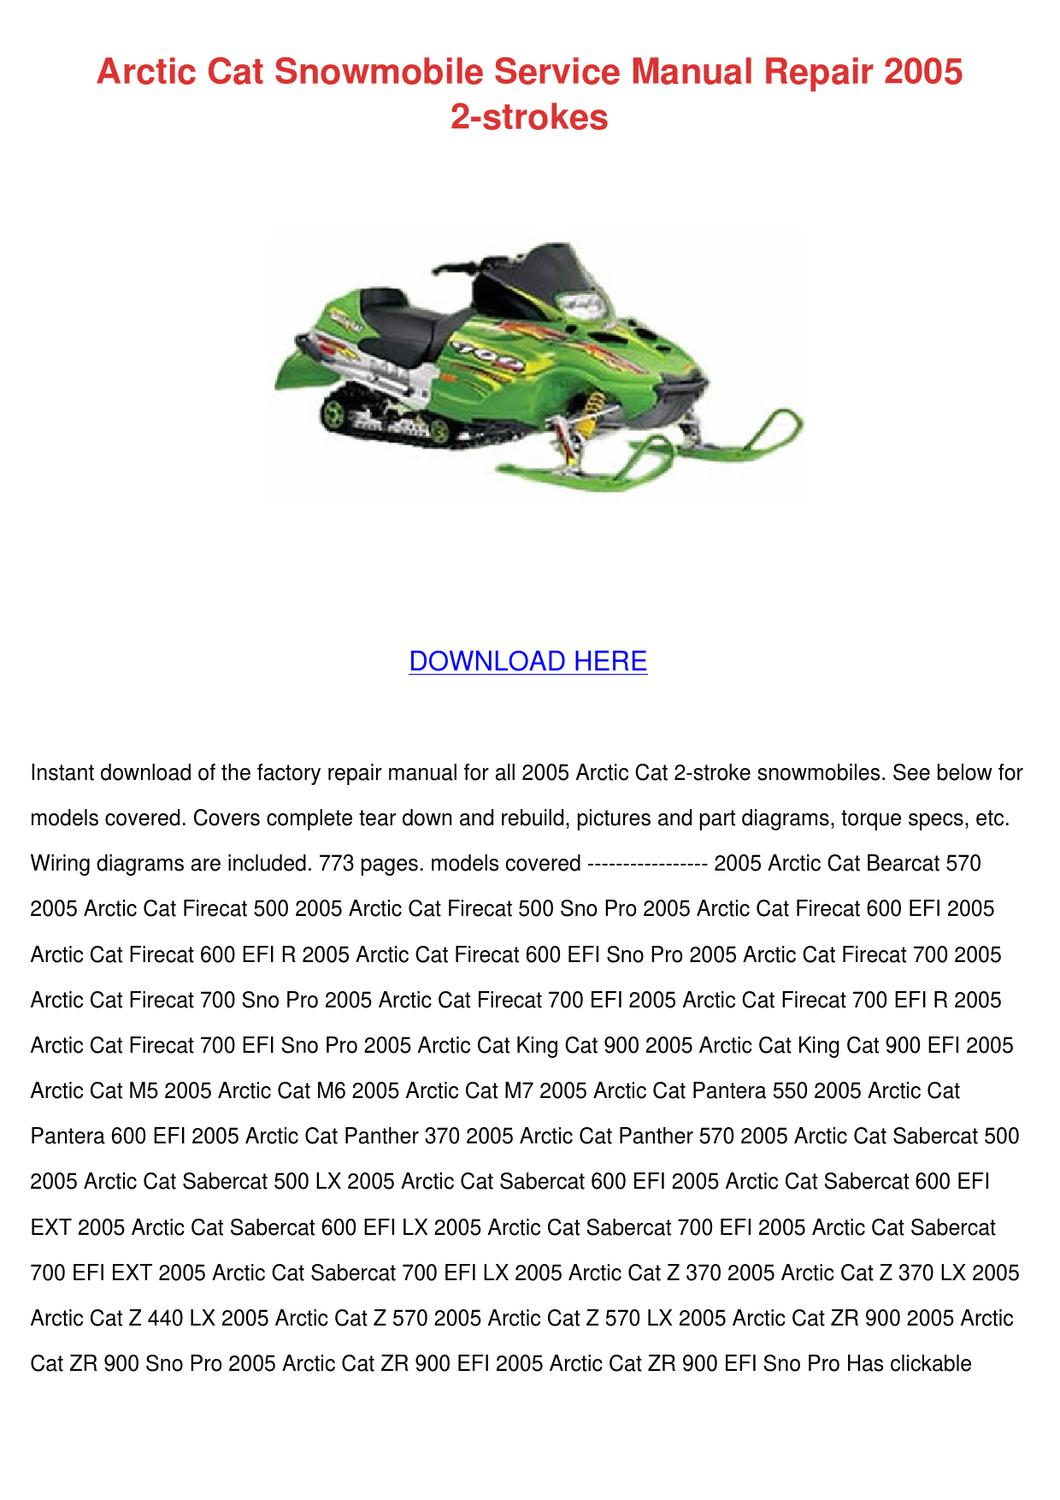 Arctic Cat Snowmobile Service Manual Repair 2 By Karey Walcott Issuu 4 Stroke Wiring Diagrams